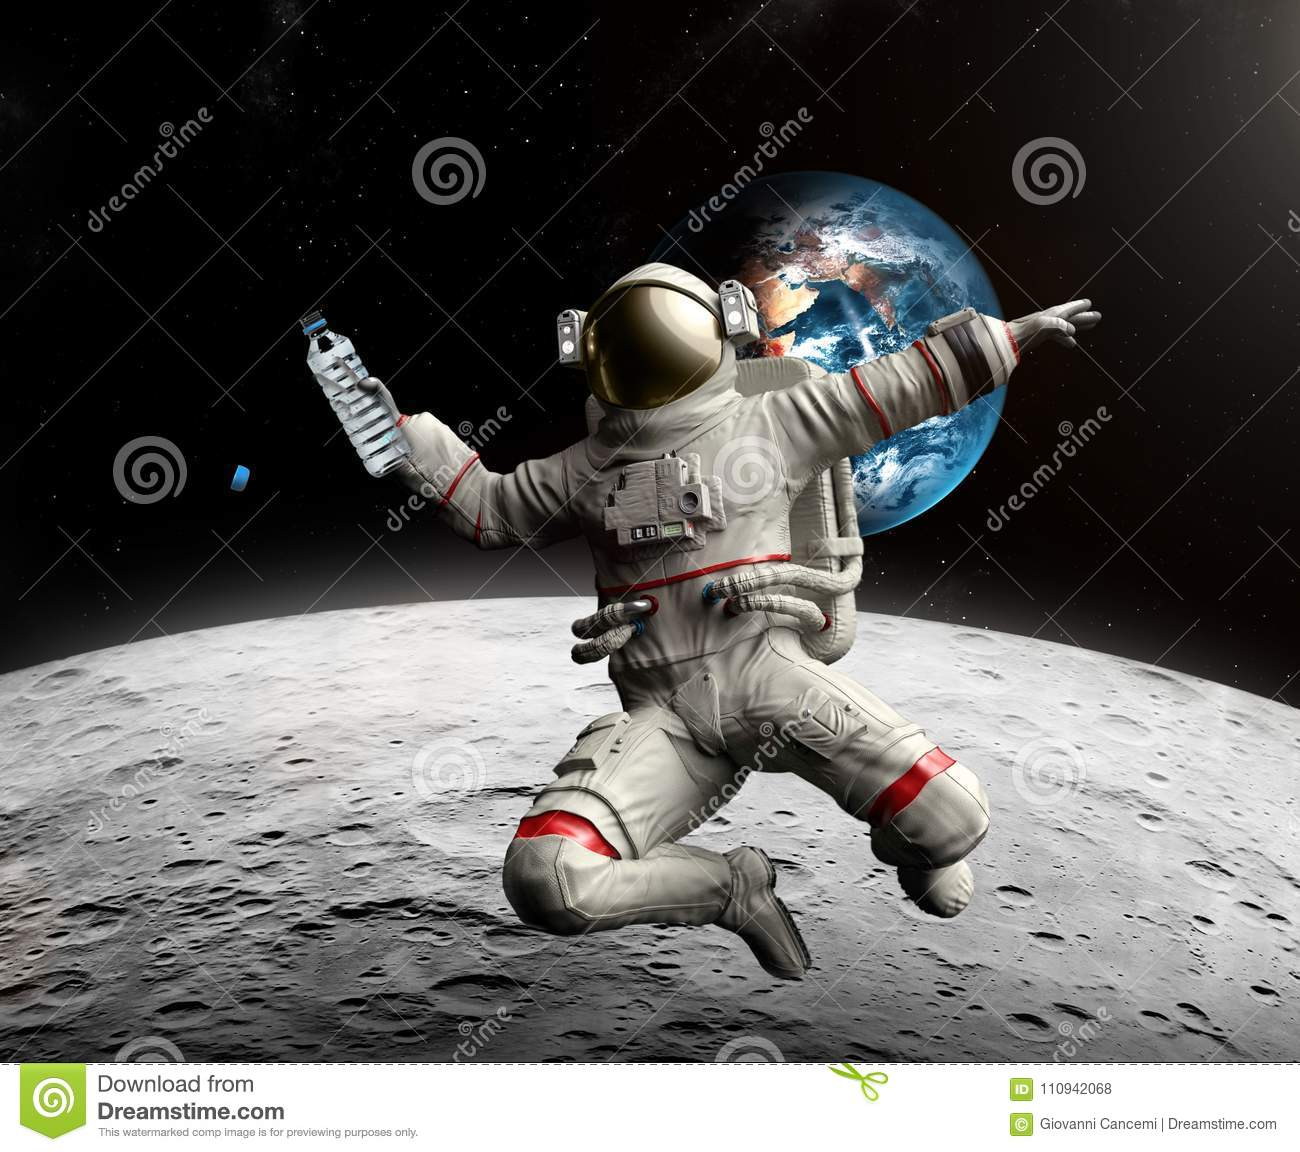 Astronaut with bottle of water in space